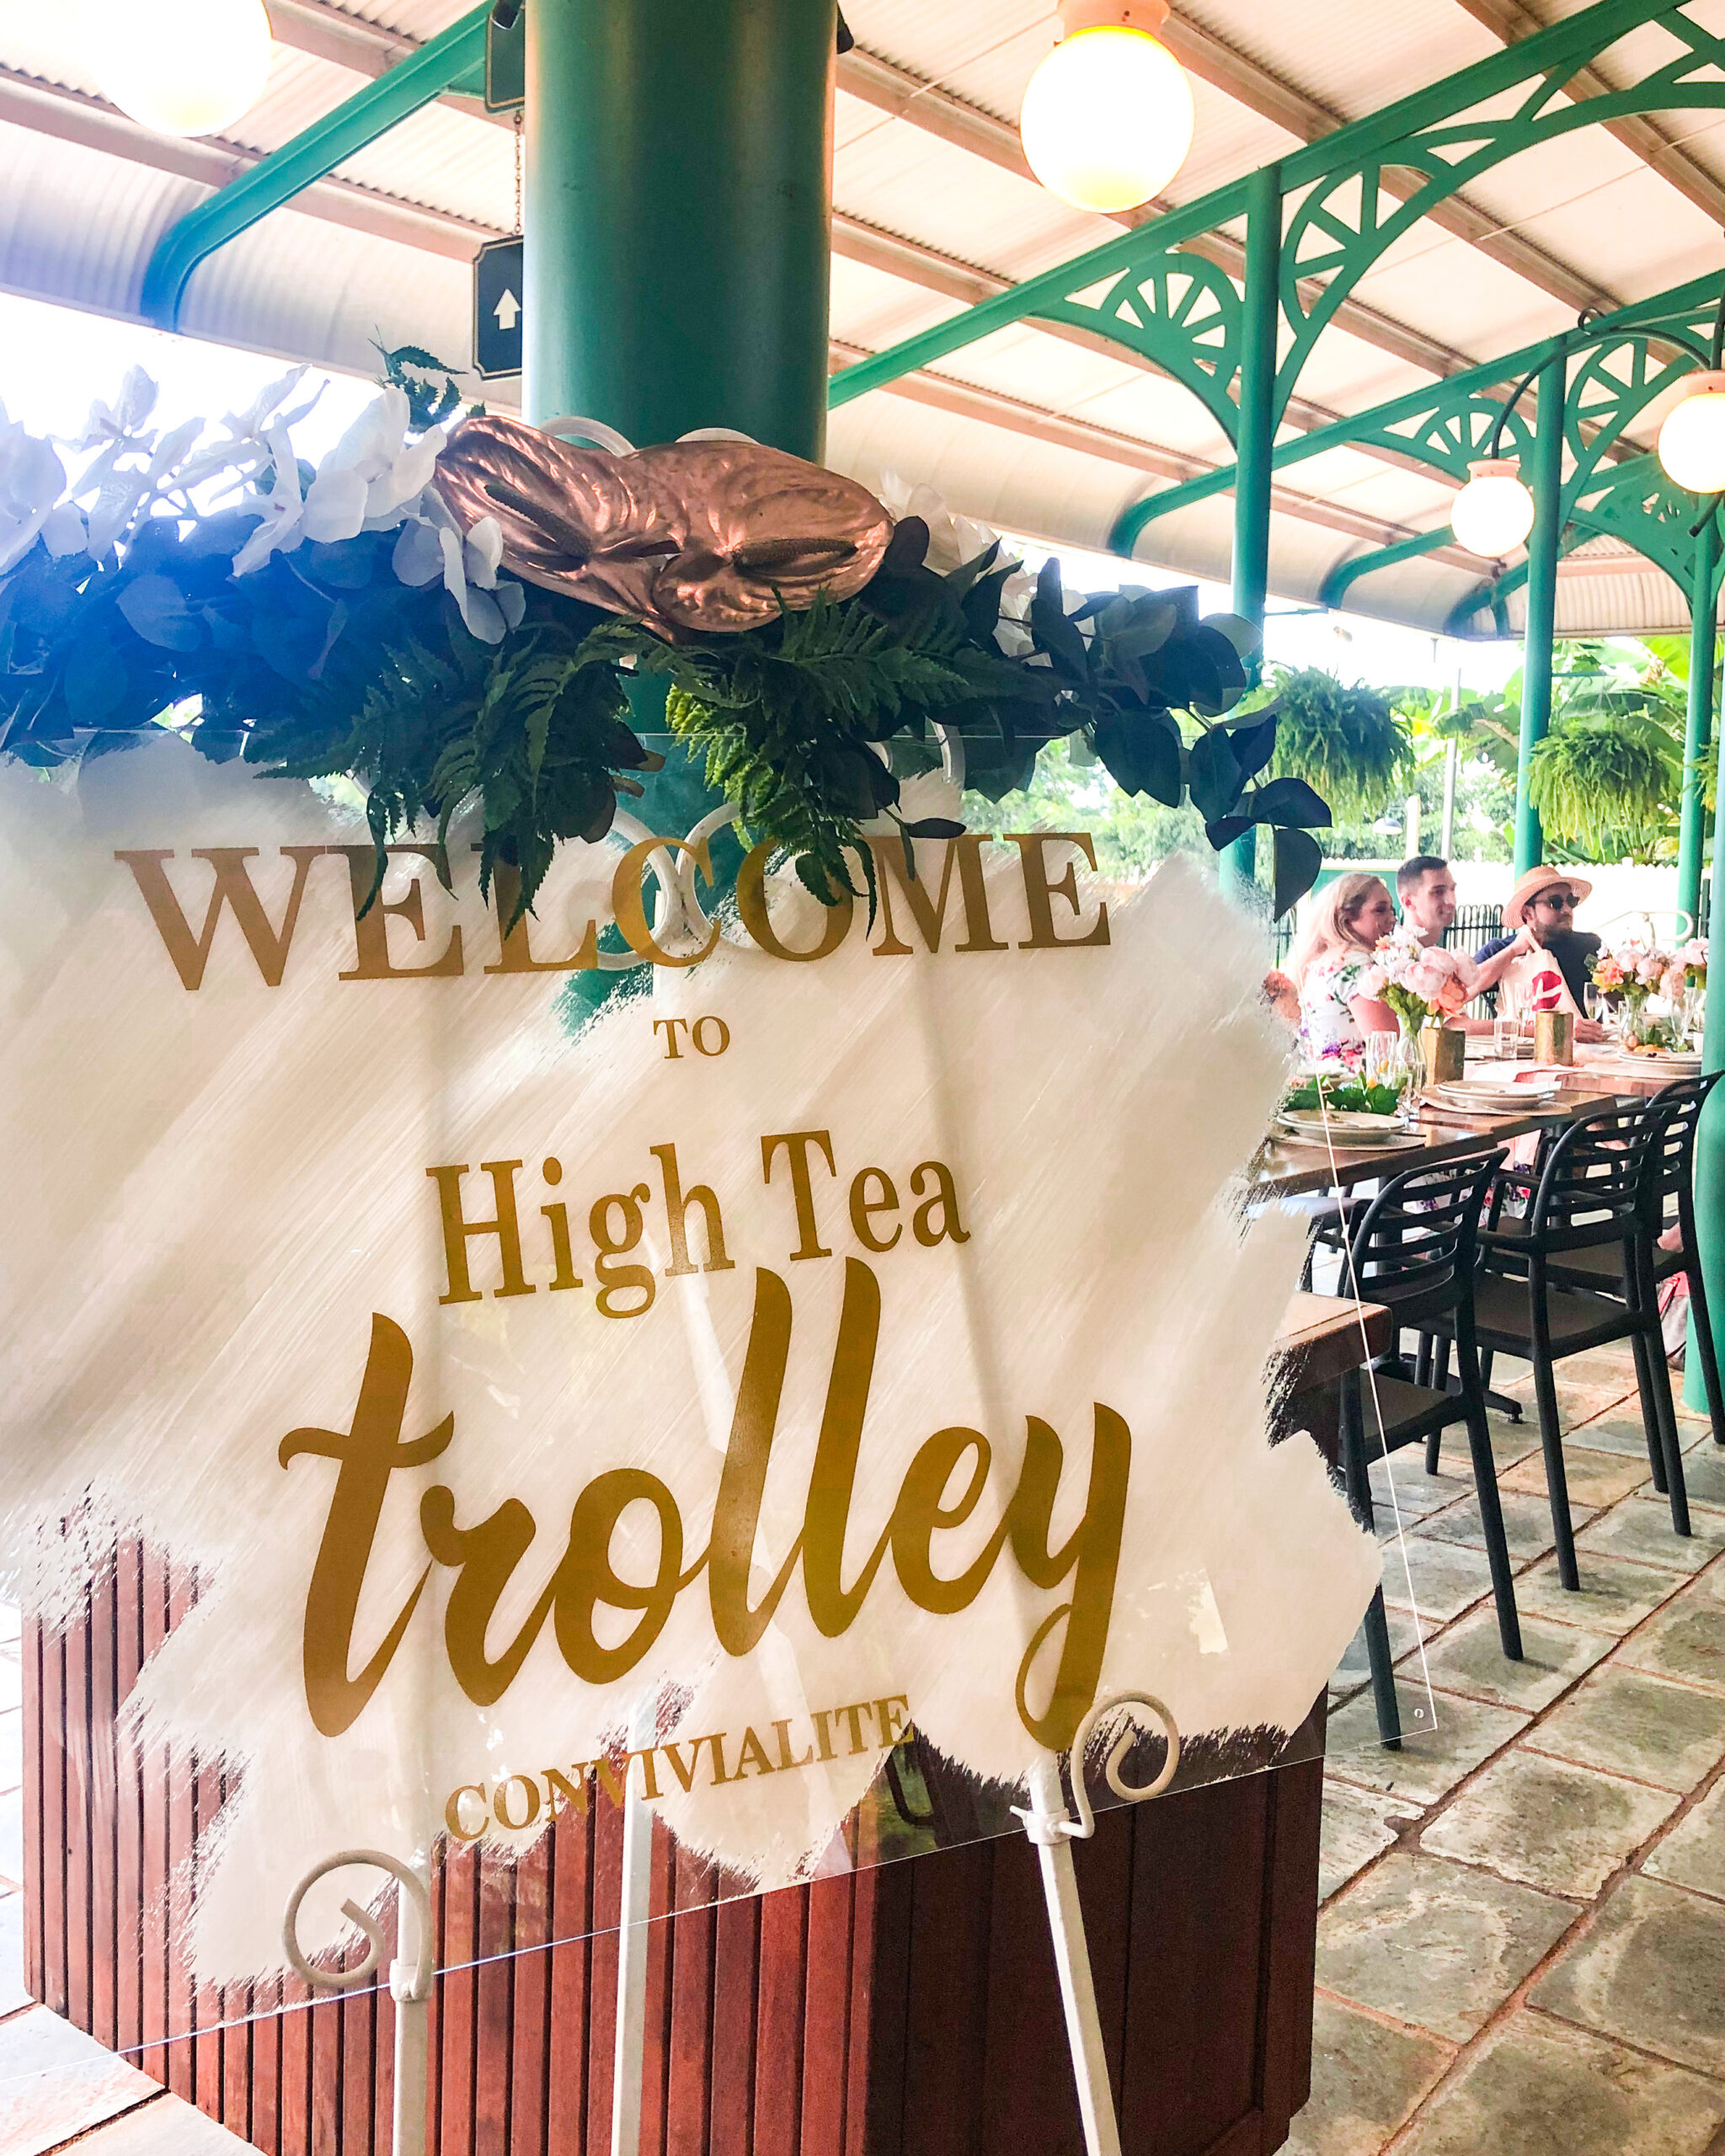 Welcome to High Tea Trolley sign